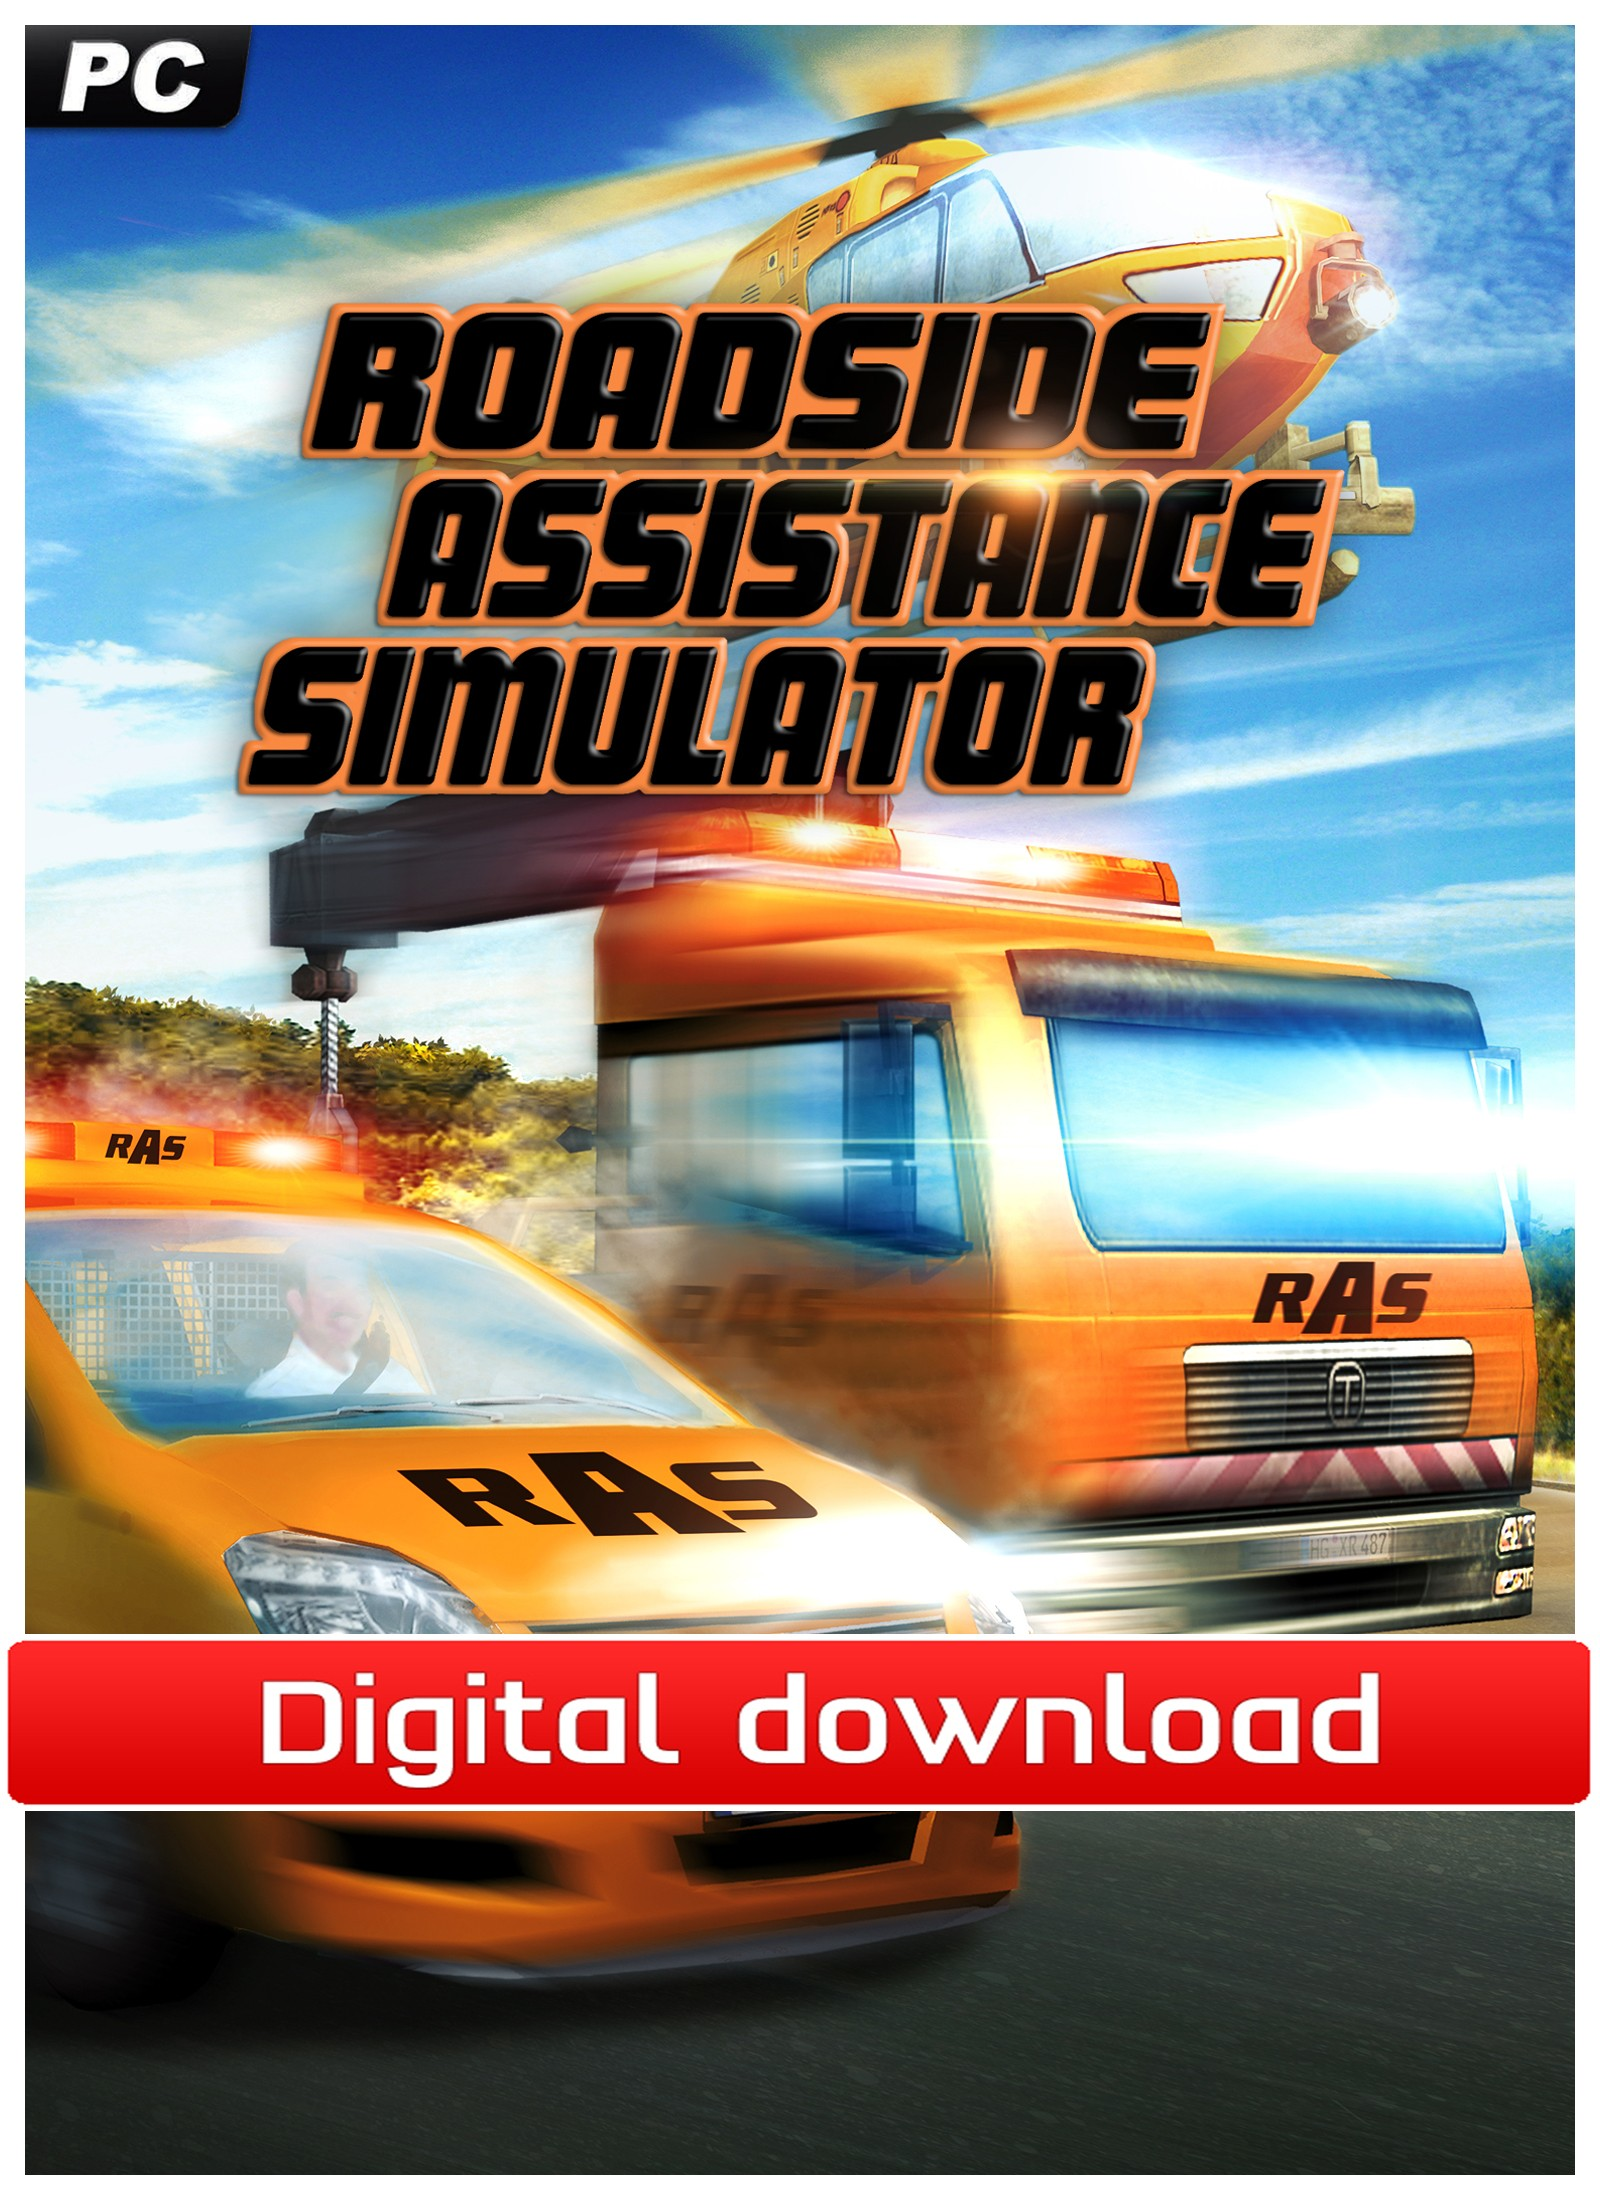 36207 : Road Assistance Simulator (PC nedlastning)